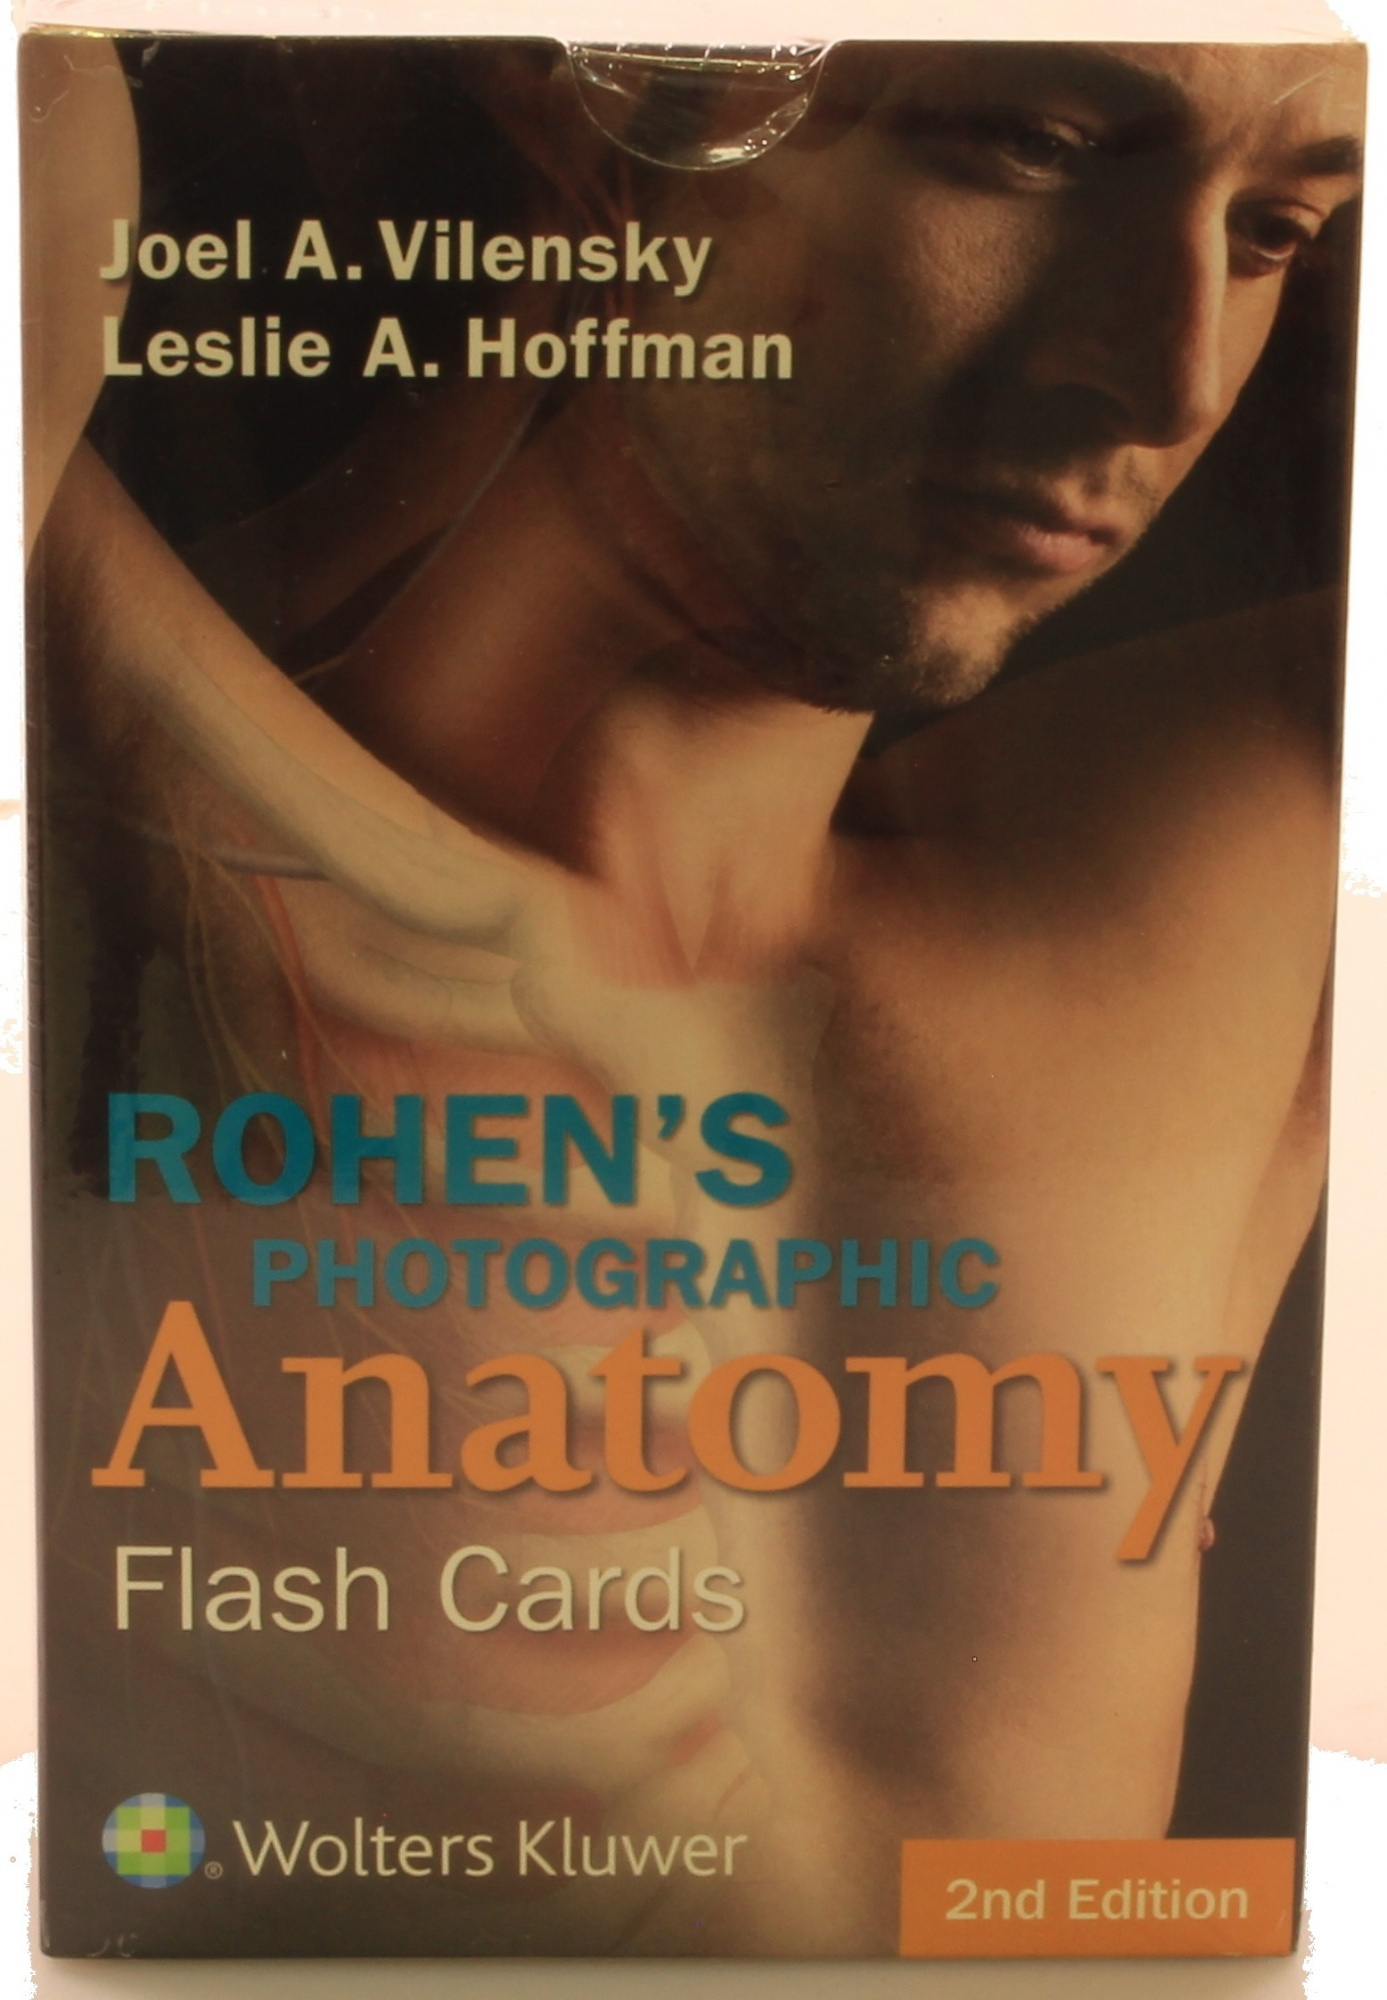 Anatomy Flash Cards Books: Buy Online from Fishpond.co.nz